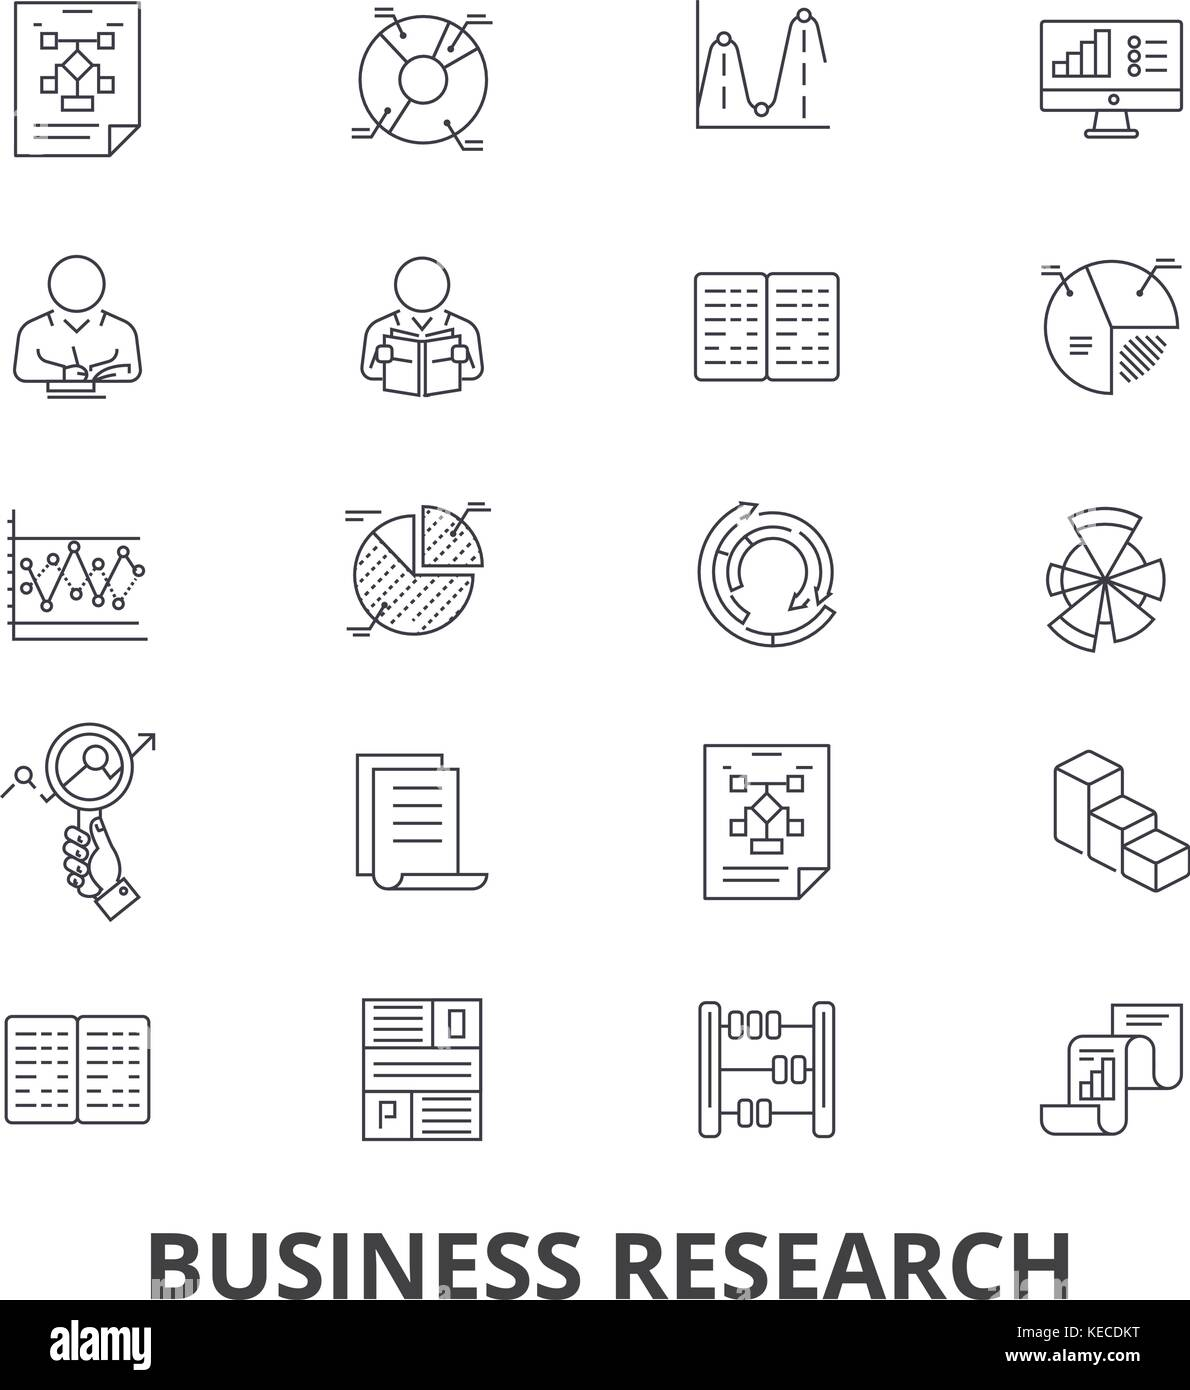 Business research, strategy, marketing, analytics, data, monitoring, studying line icons. Editable strokes. Flat - Stock Image